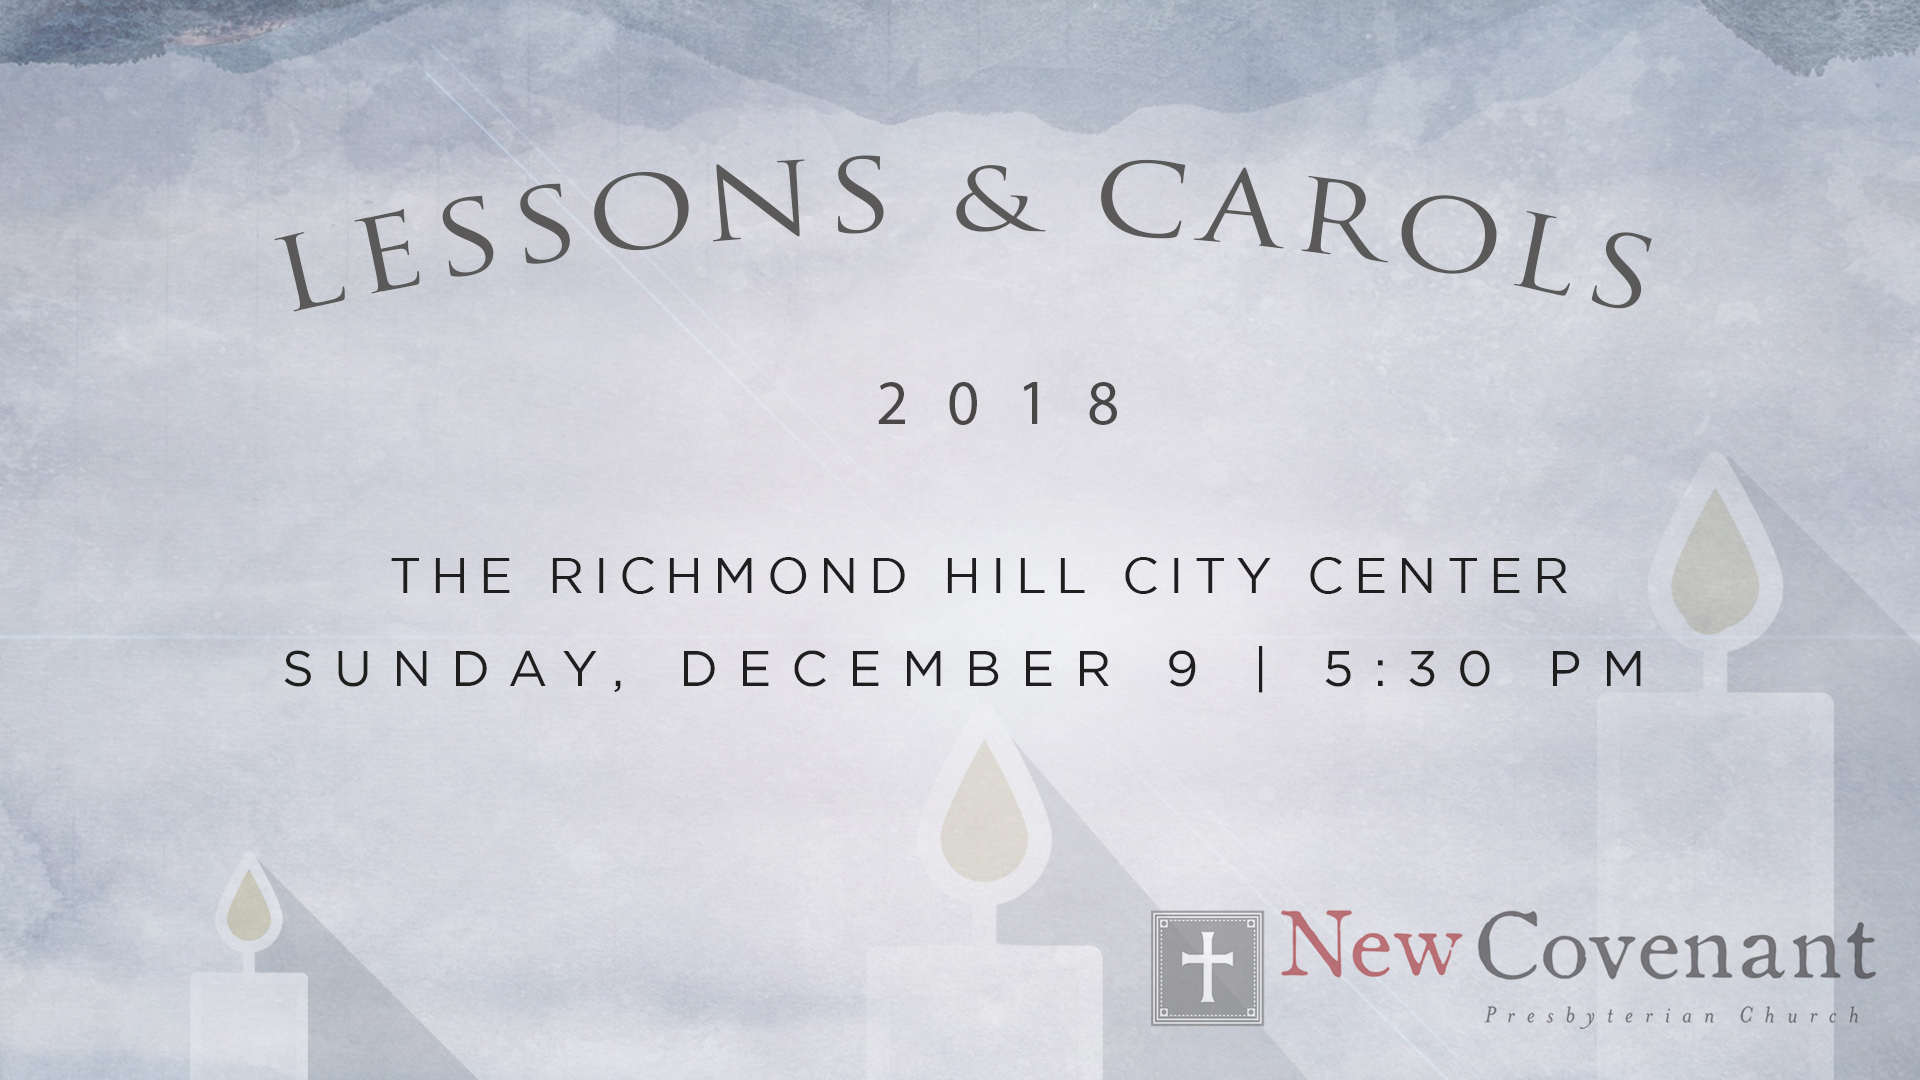 2018 LESSONS AND CAROLS image